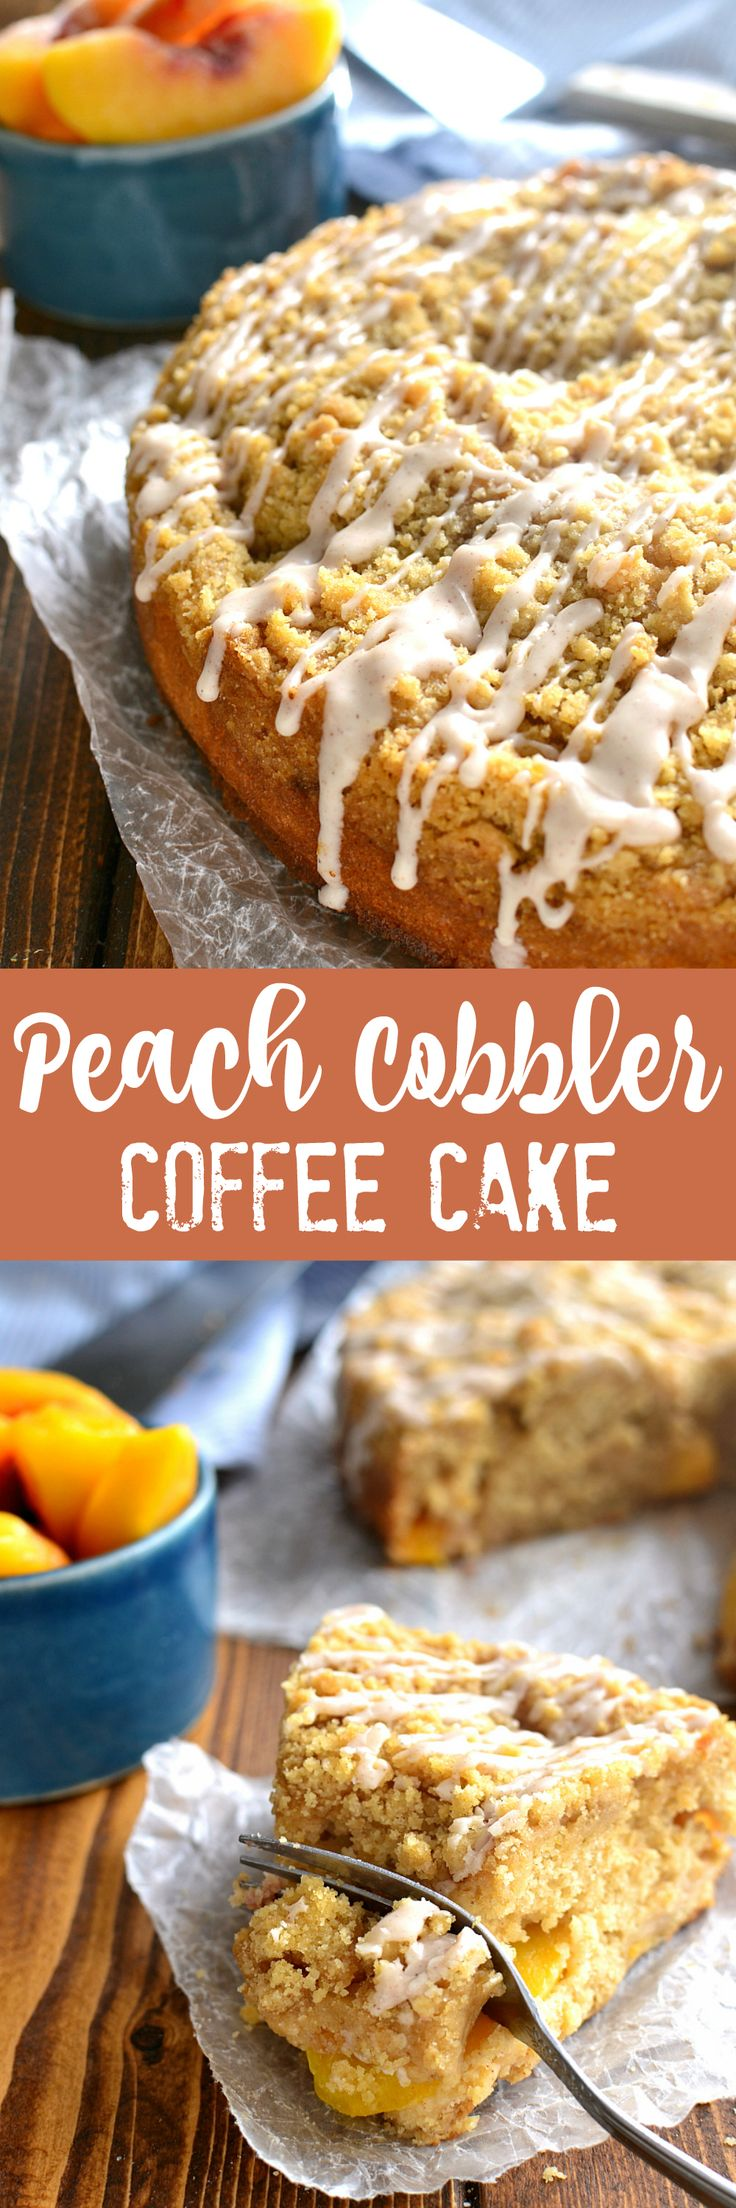 This Peach Cobbler Coffee Cake combines rich, moist cake with delicious fresh peaches and a sweet cinnamon drizzle. THE perfect coffee cake for spring, and destined to become a family favorite!